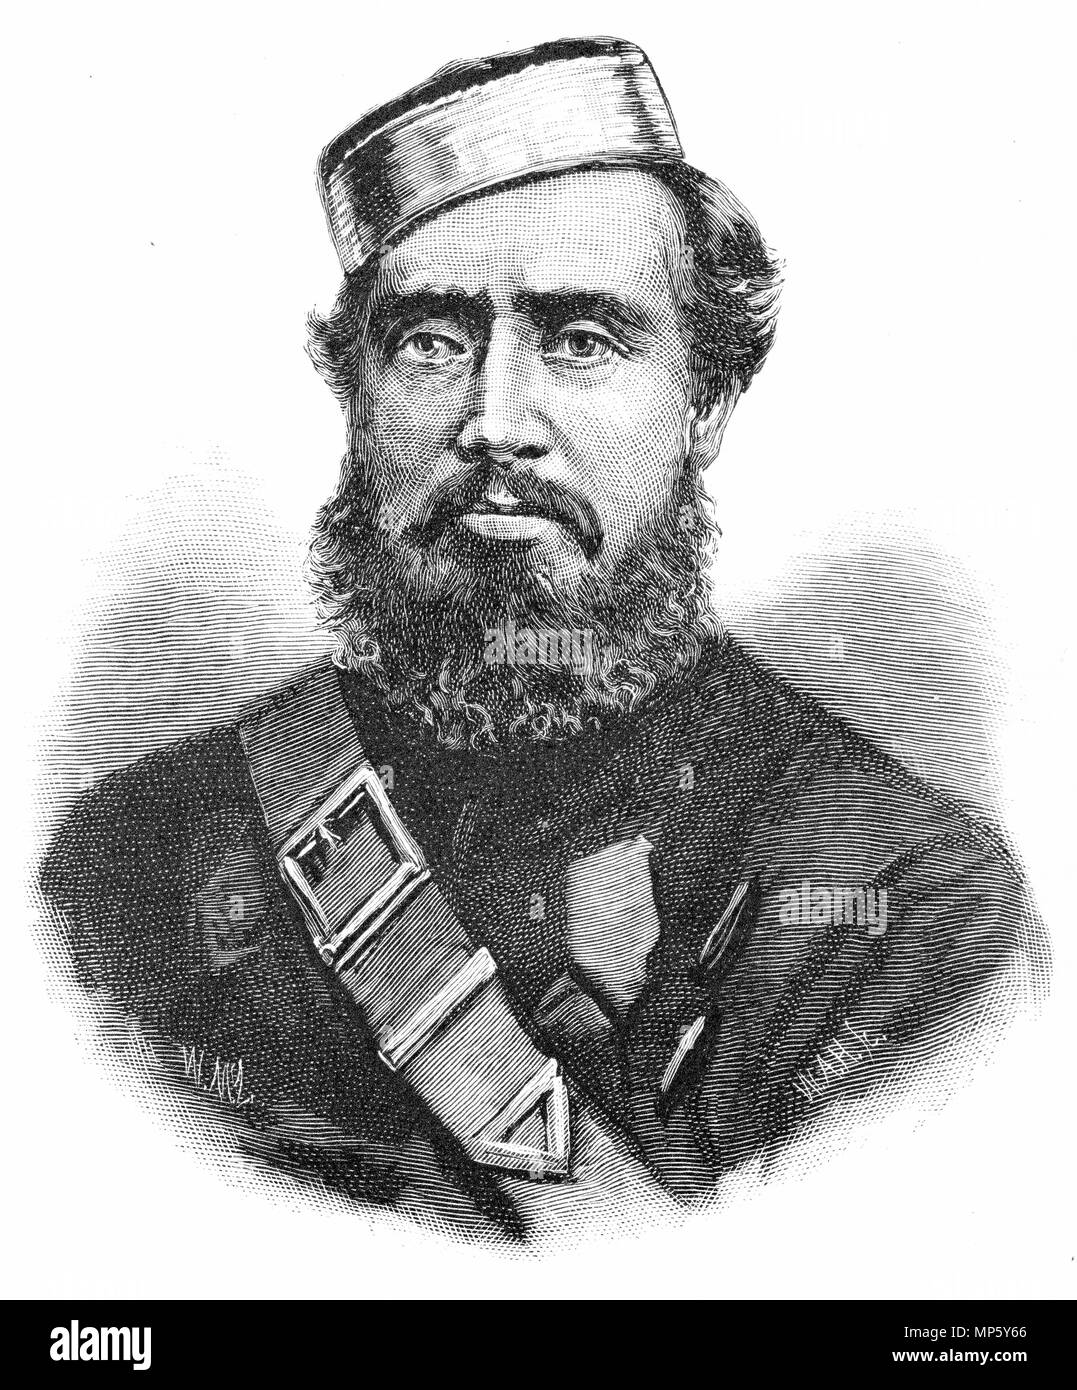 Engraving of Major Ropata, a colonial leader of the armies fighting in the New Zealand Land Wars of the 1860s. From the Picturesque Atlas of Australasia Vol 3, 1886 - Stock Image